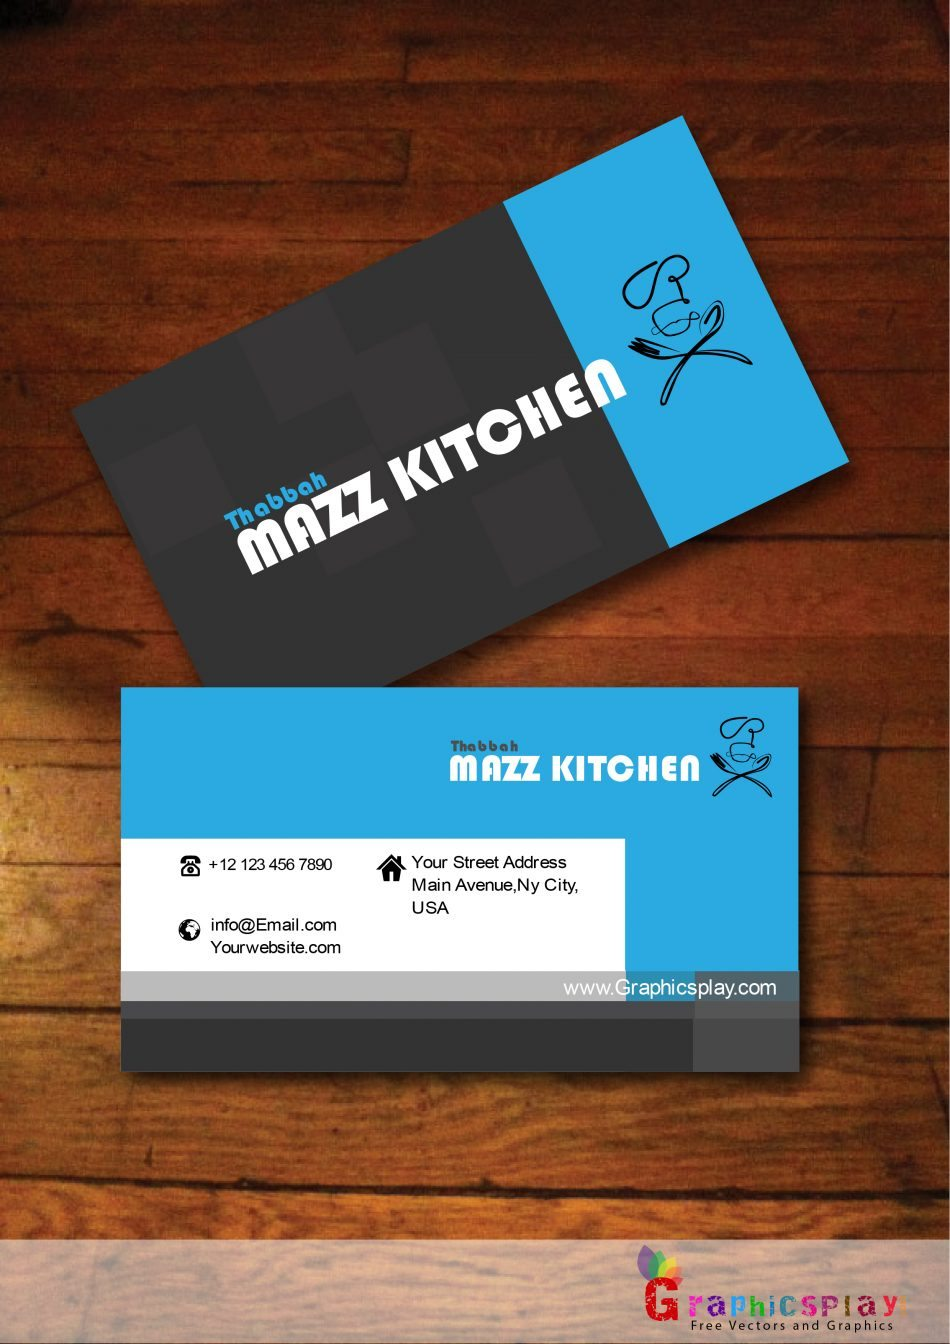 Black and Blue Business Card Vector for Food and Catering - GraphicsPlay